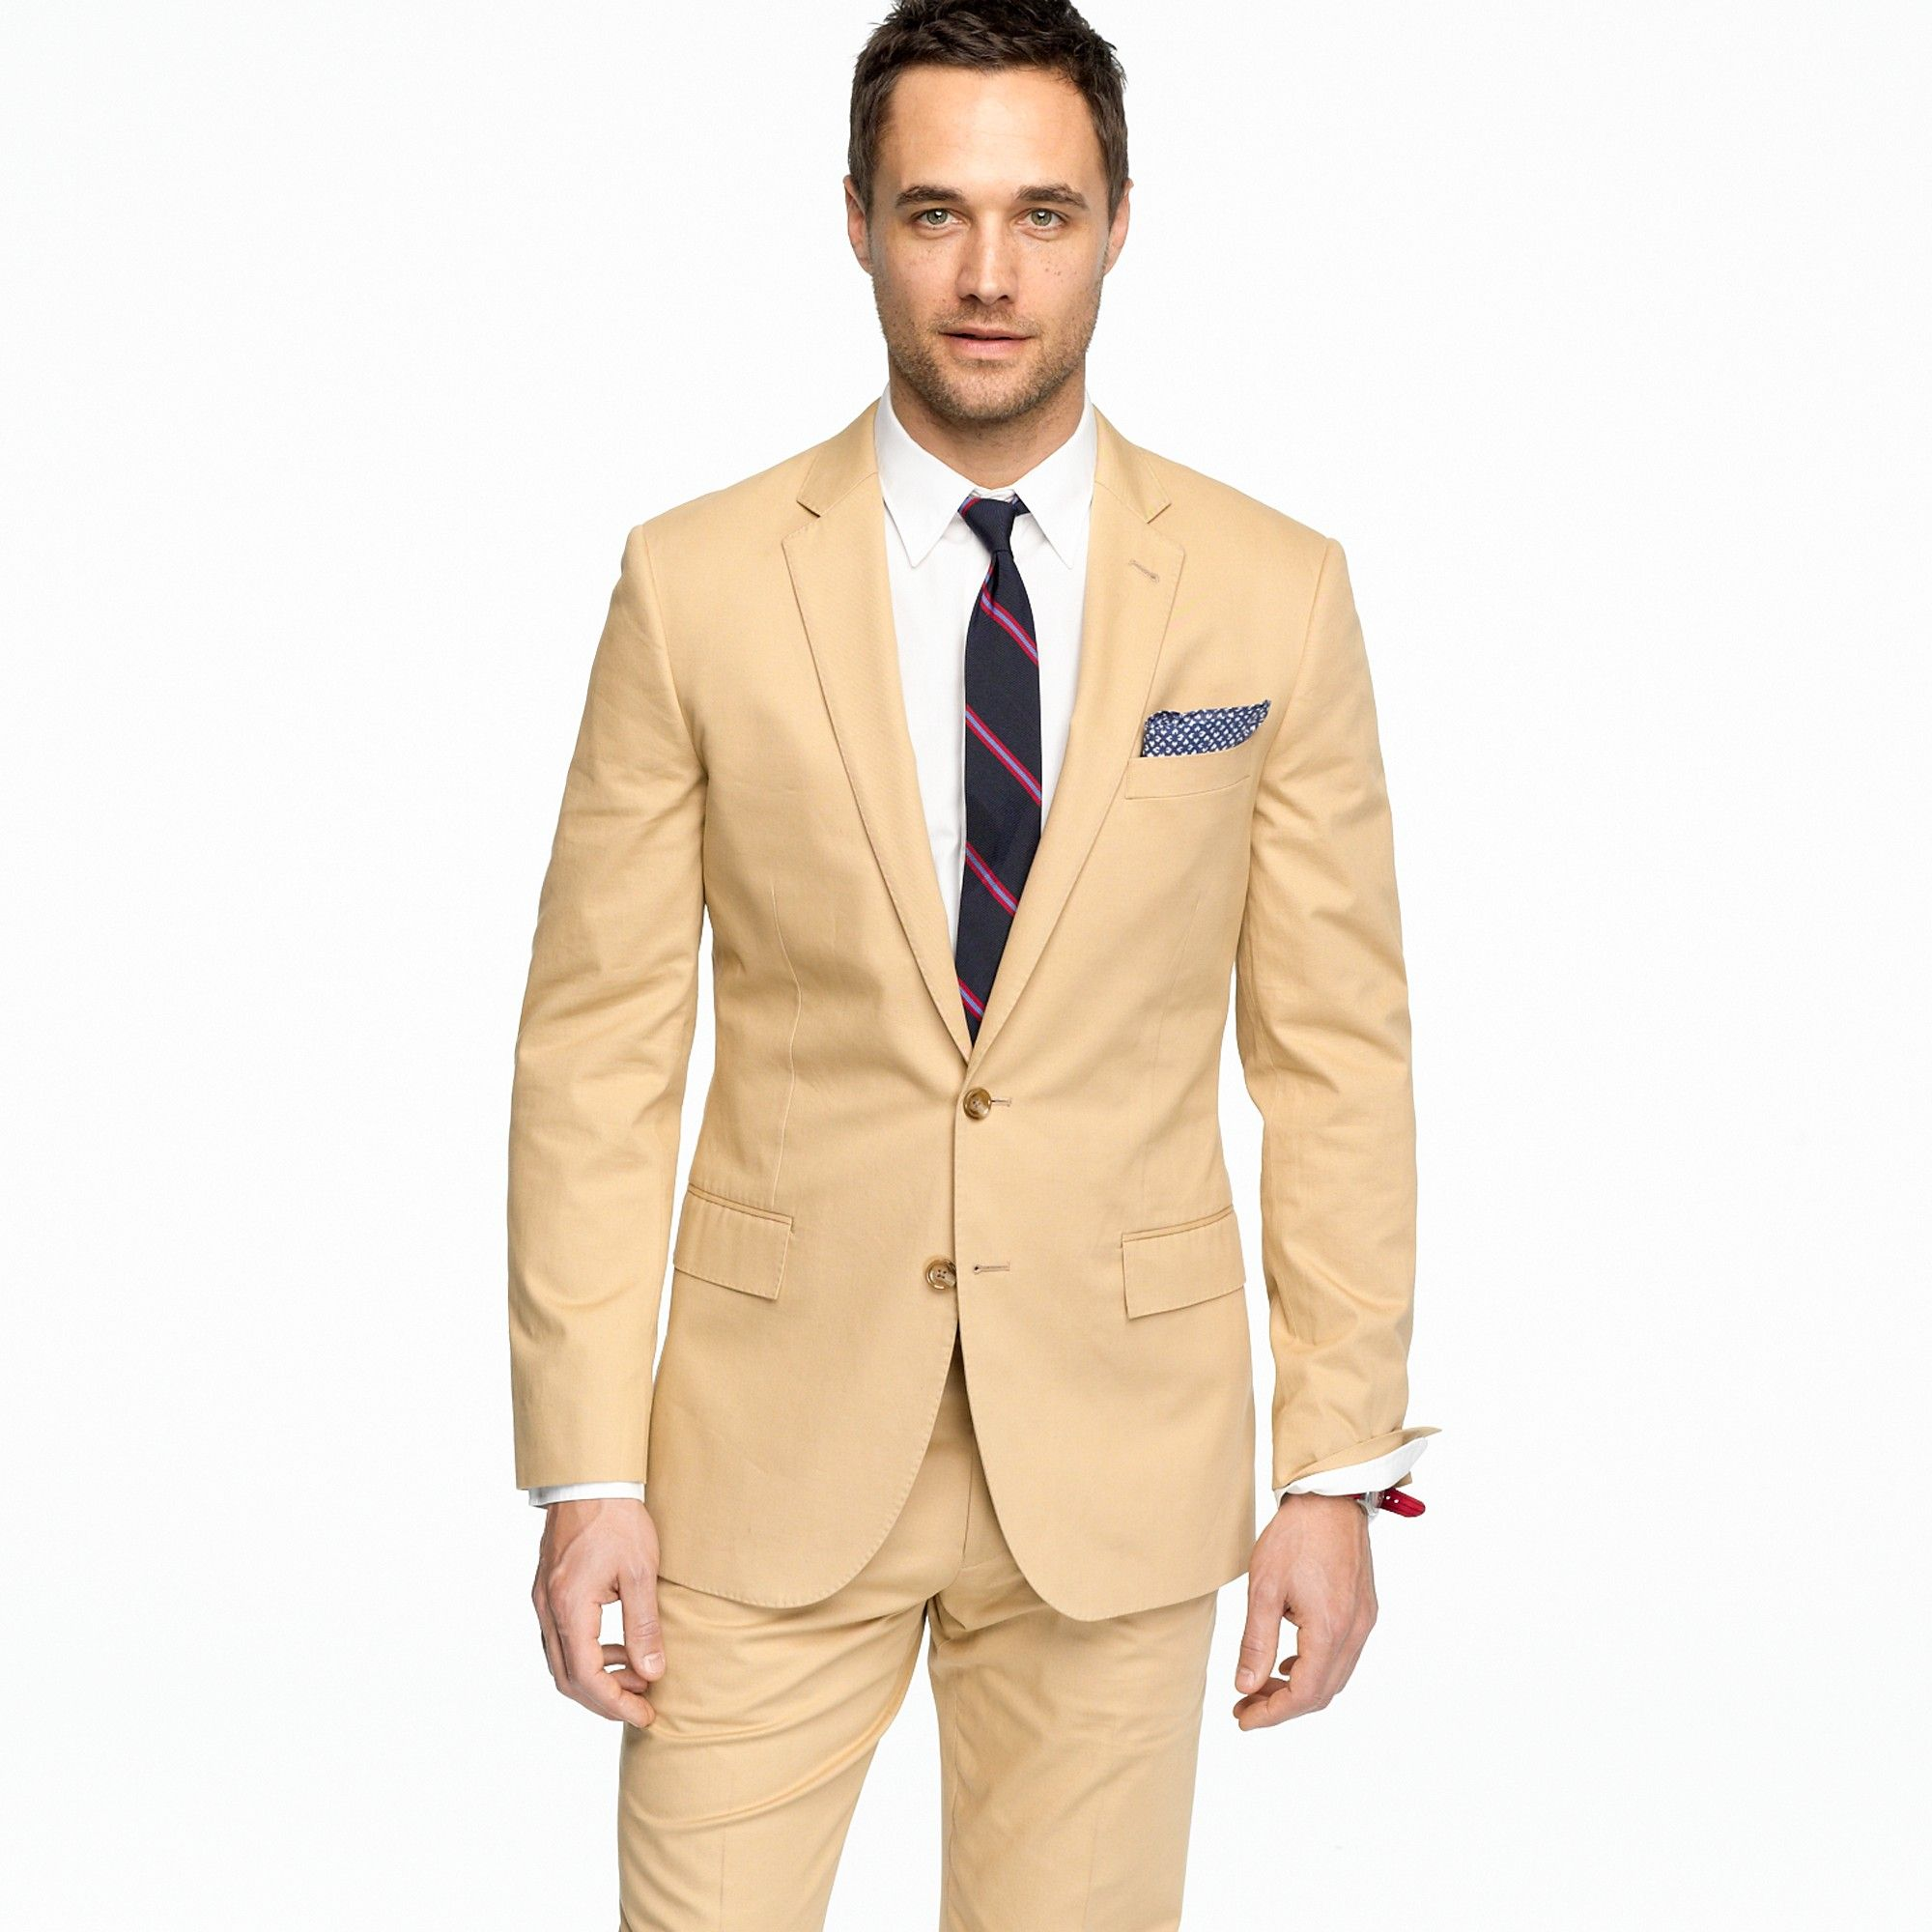 jcrew-wheat-ludlow-two-button-suit-jacket-with-double-vented-back ...